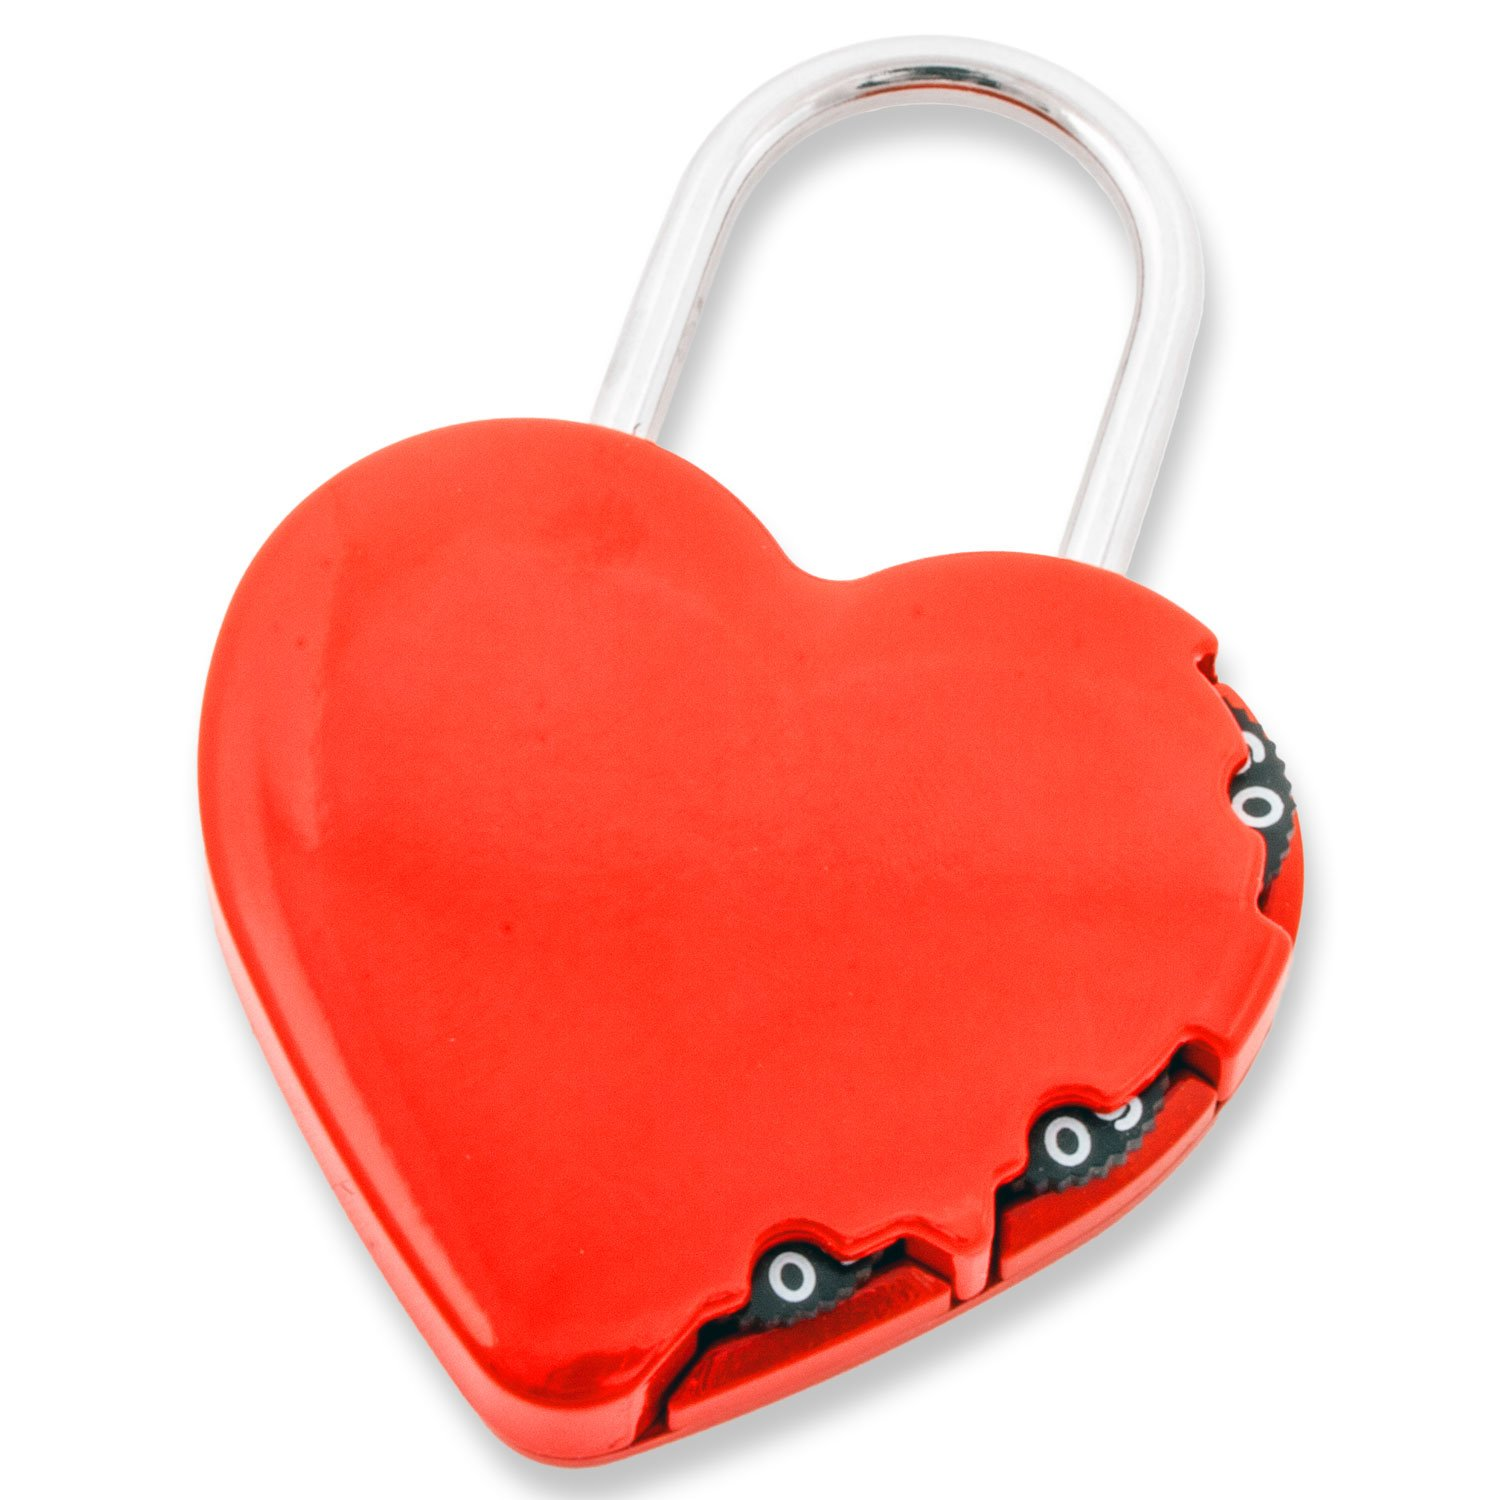 FJM Security SX-691 3 Dial Red Heart Combination Padlock - 40 Pack by FJM Security